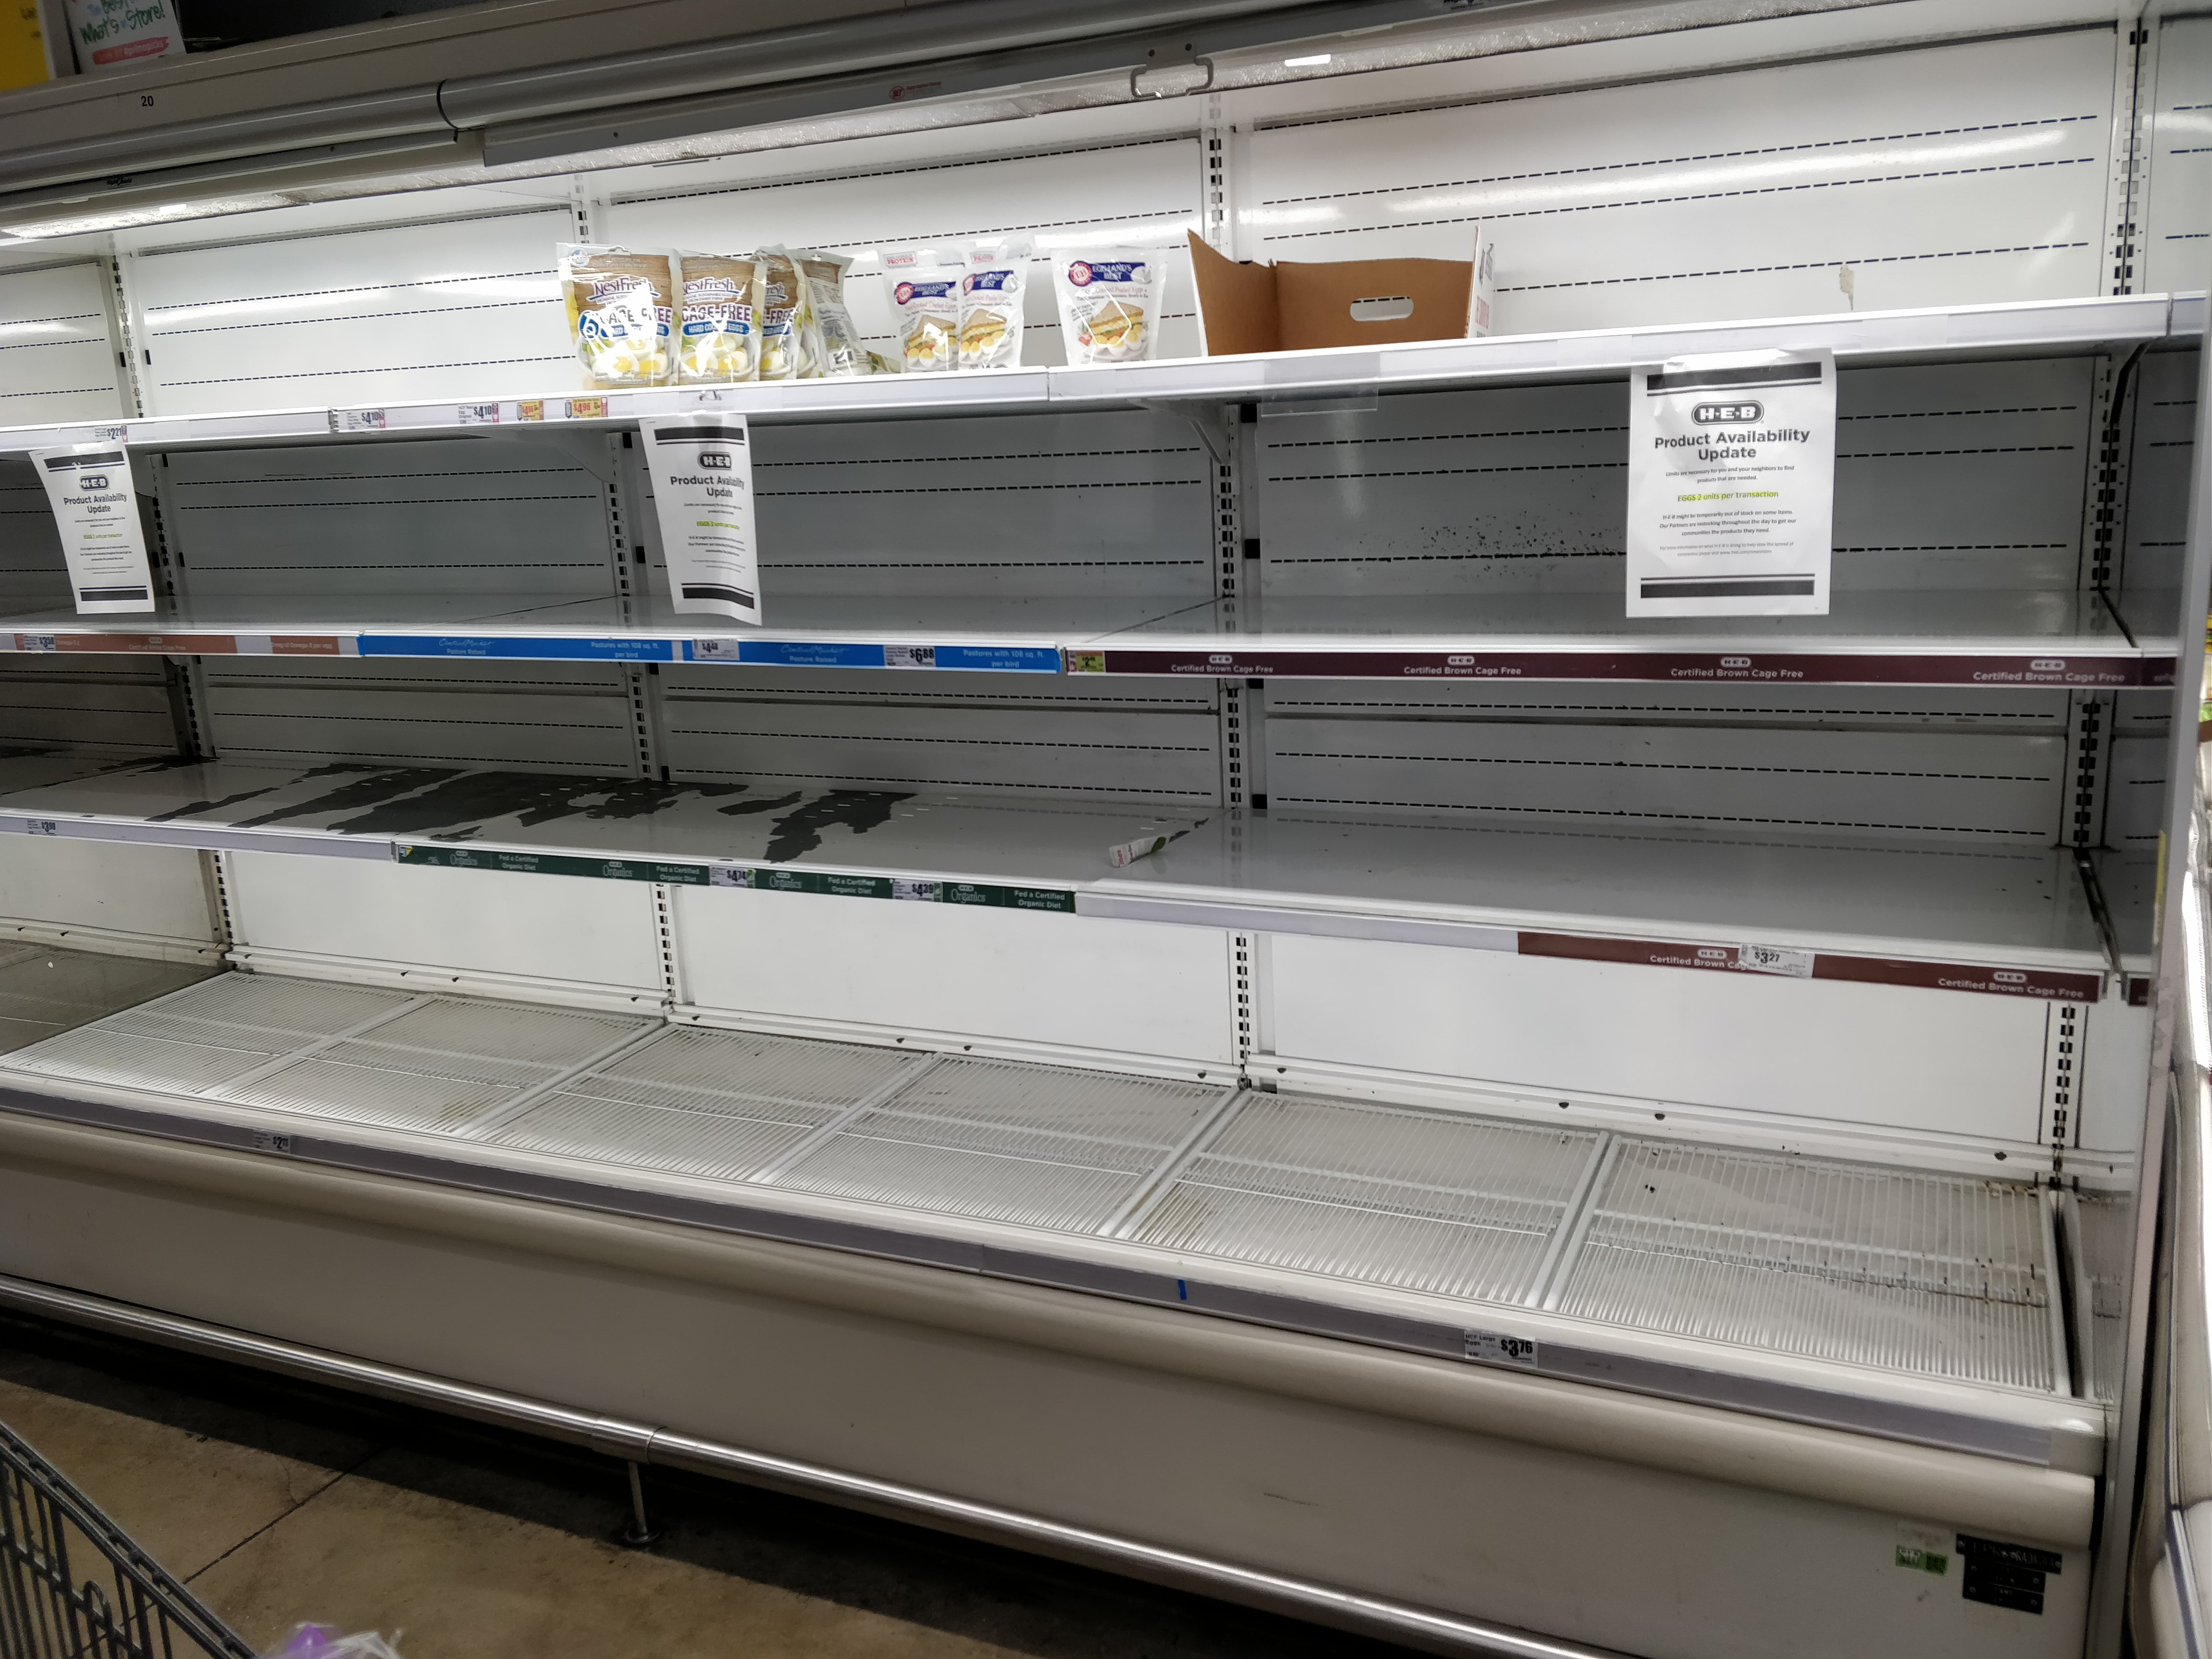 grocery store with empty cooler shelves March 2020